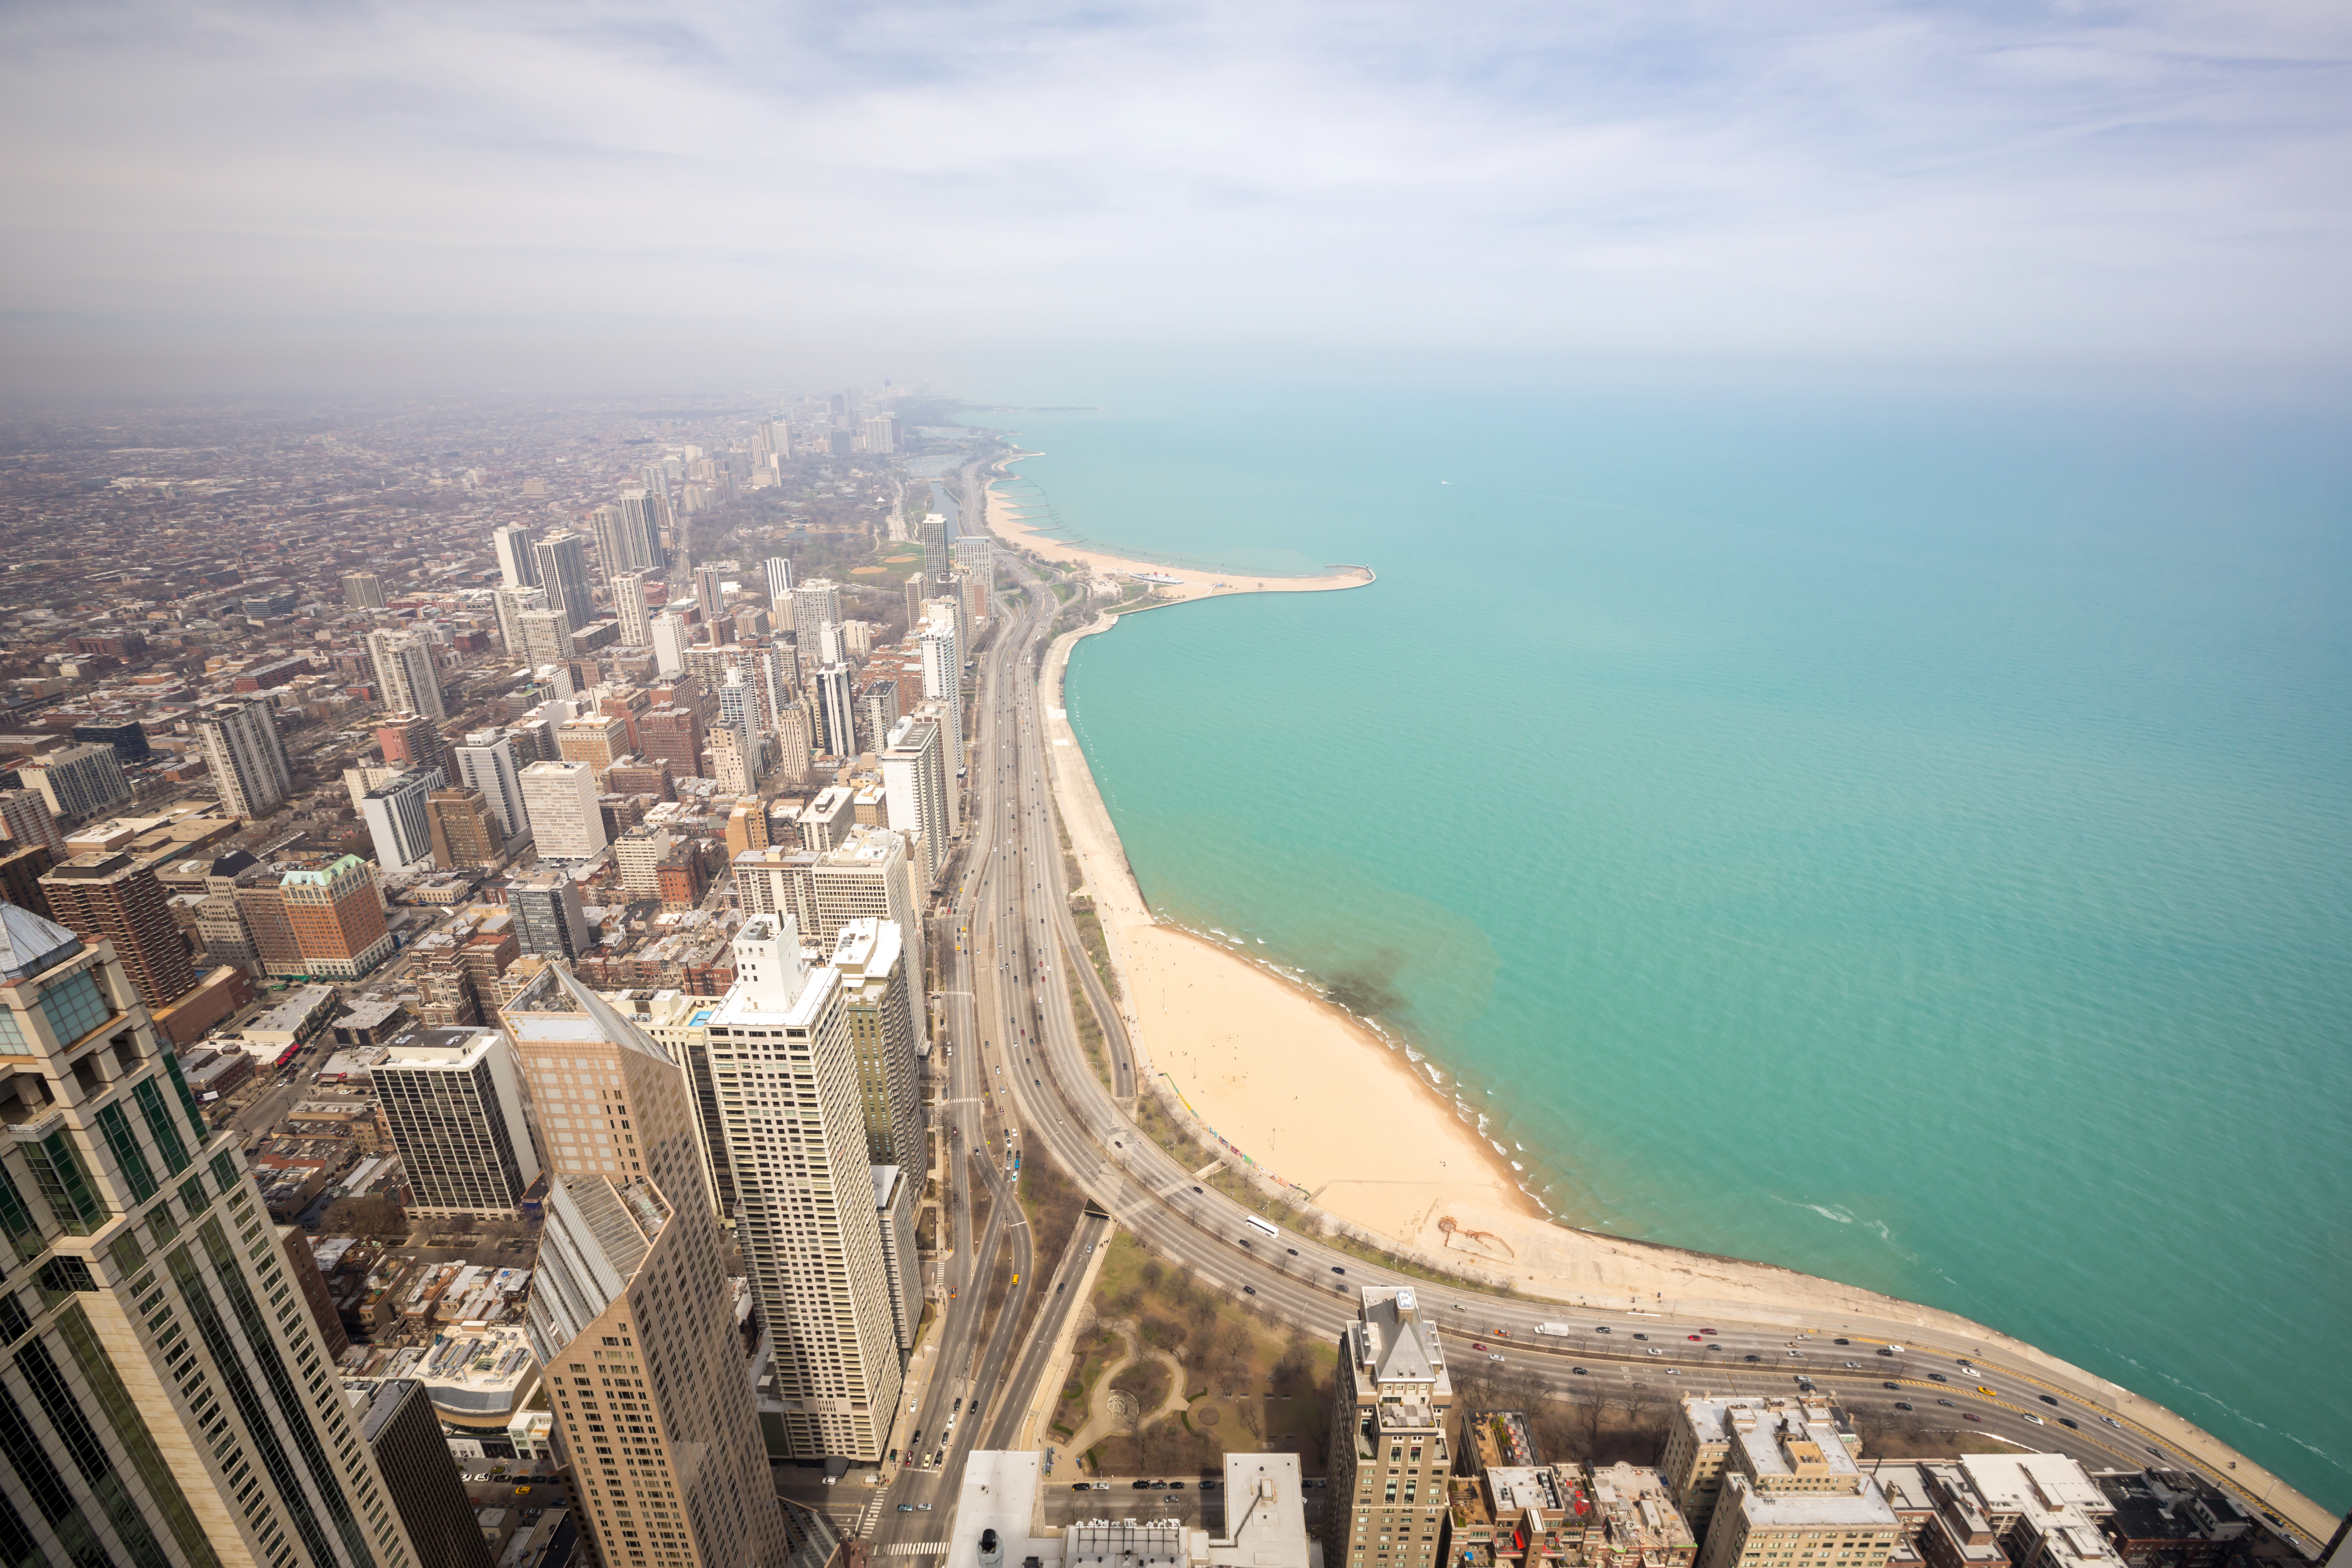 Chicago Aerial View - Don't Judge a City By A Layover